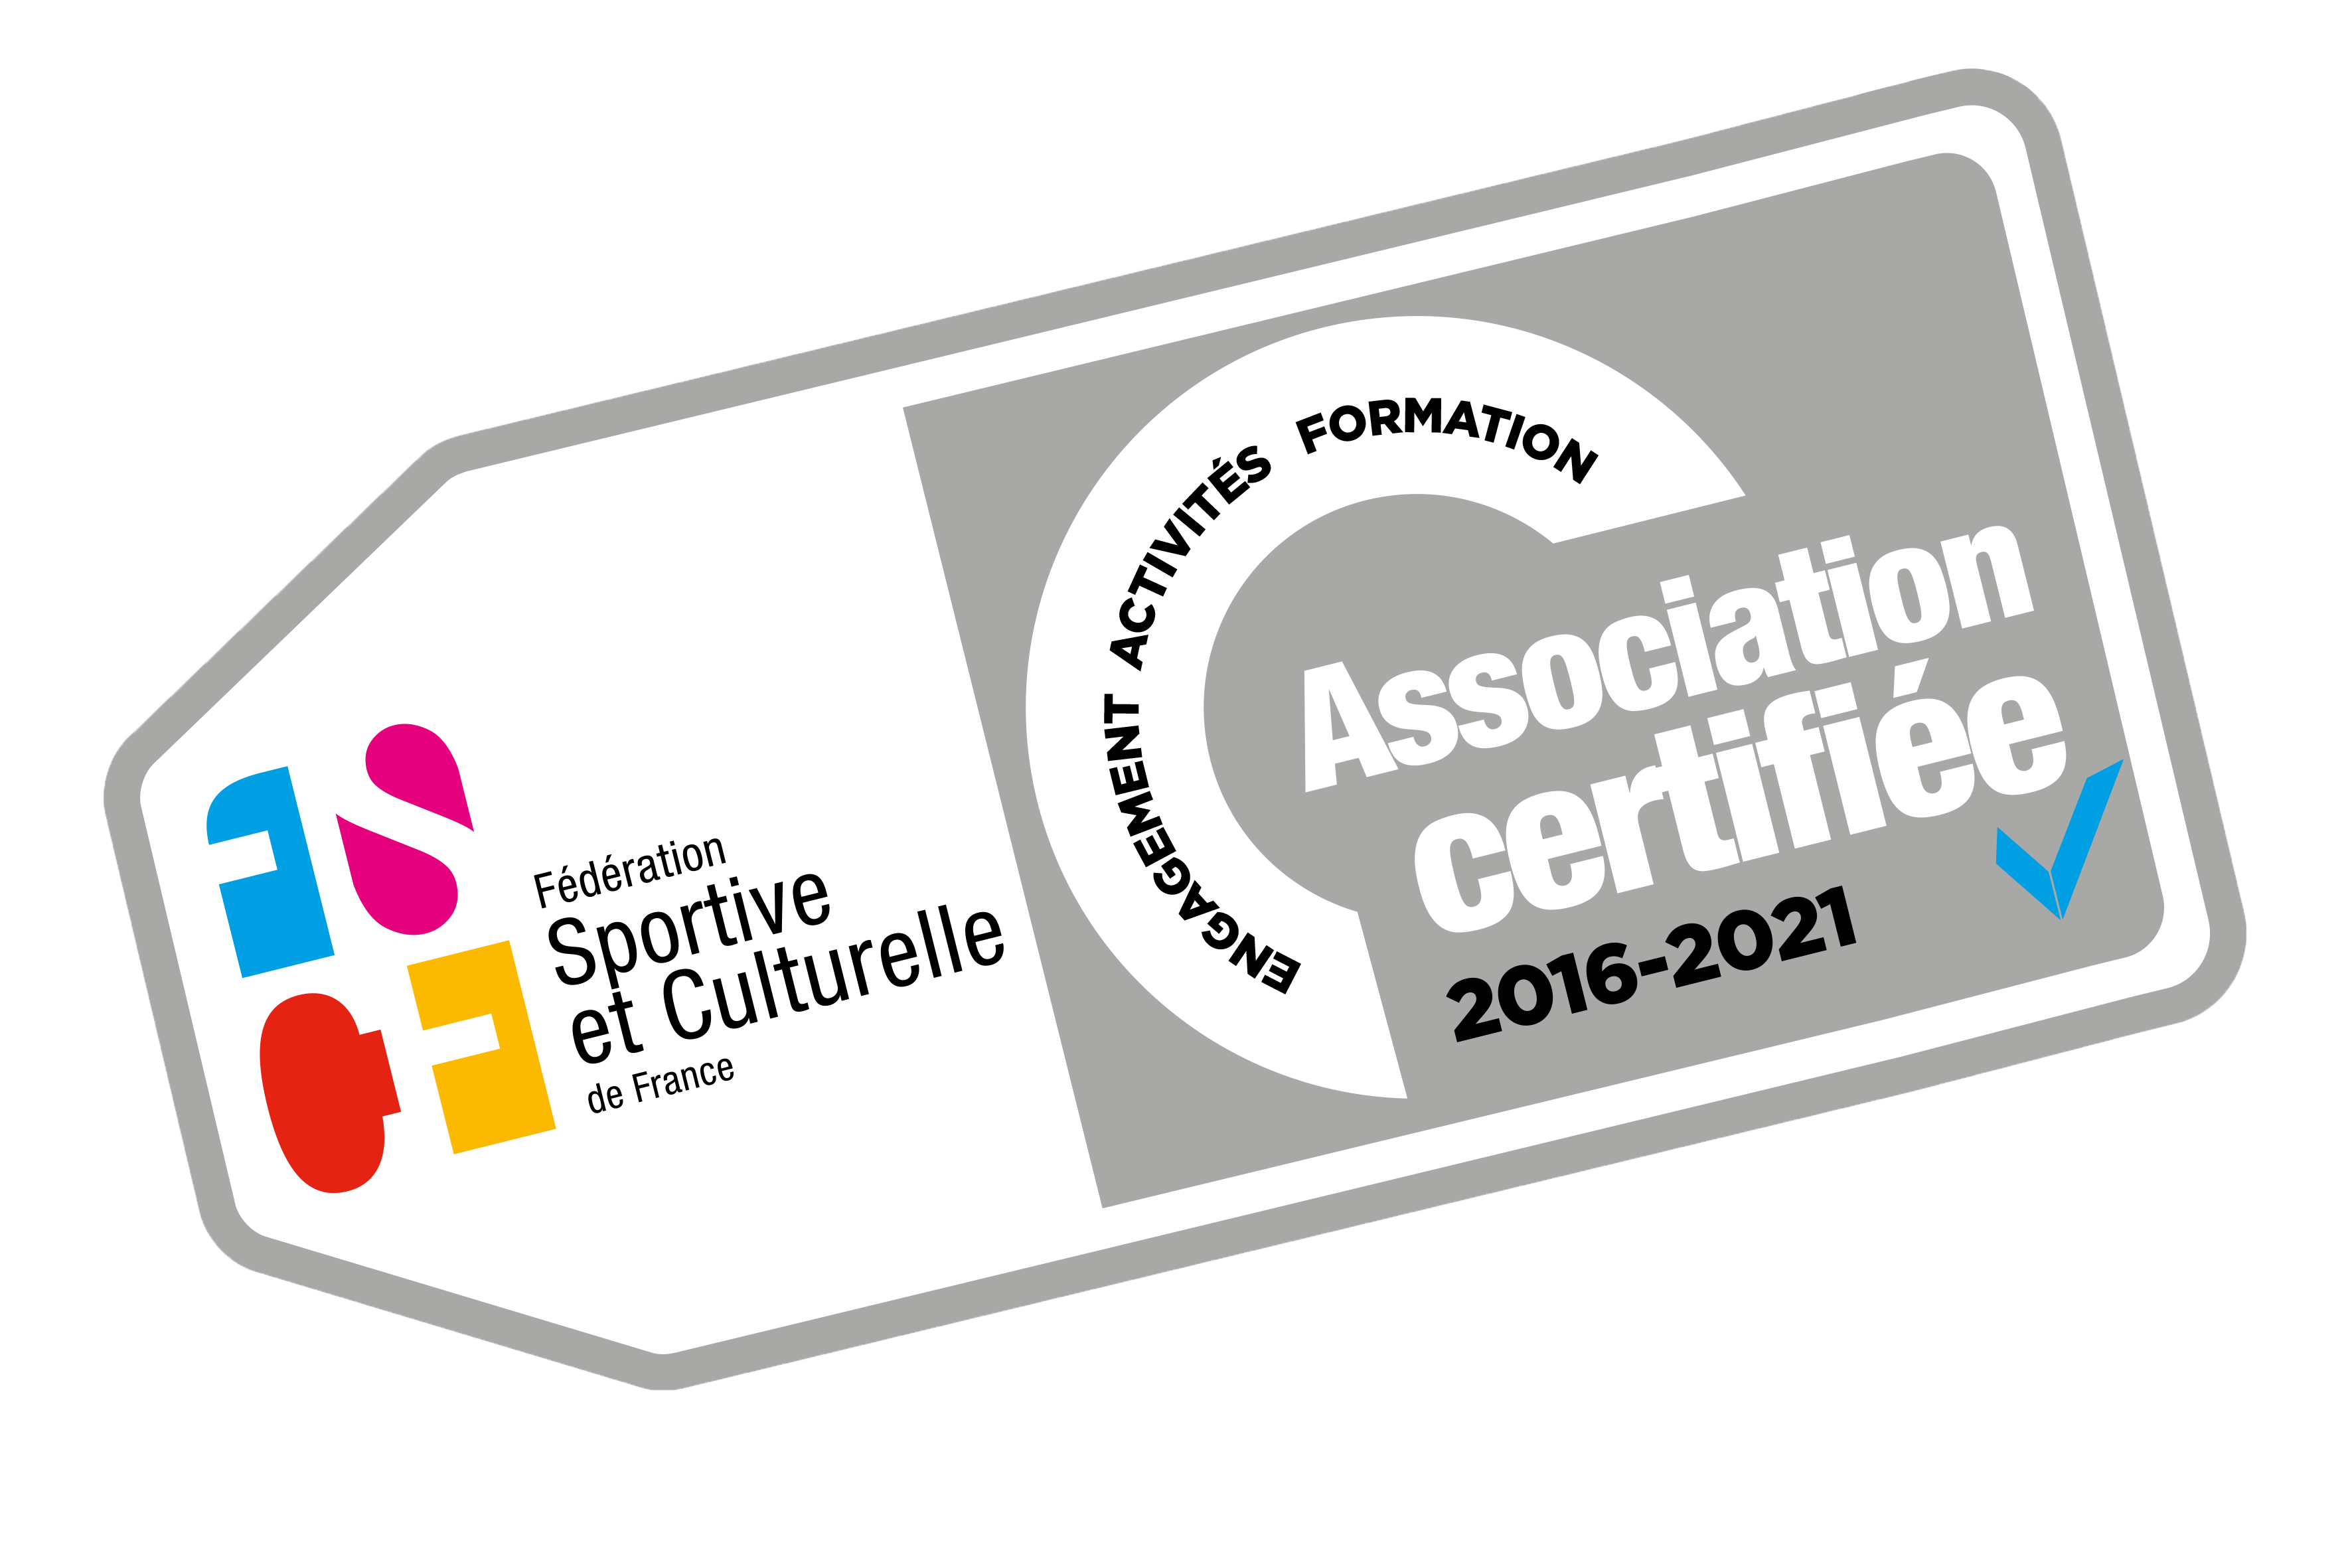 LOGO-CERTIFICATION